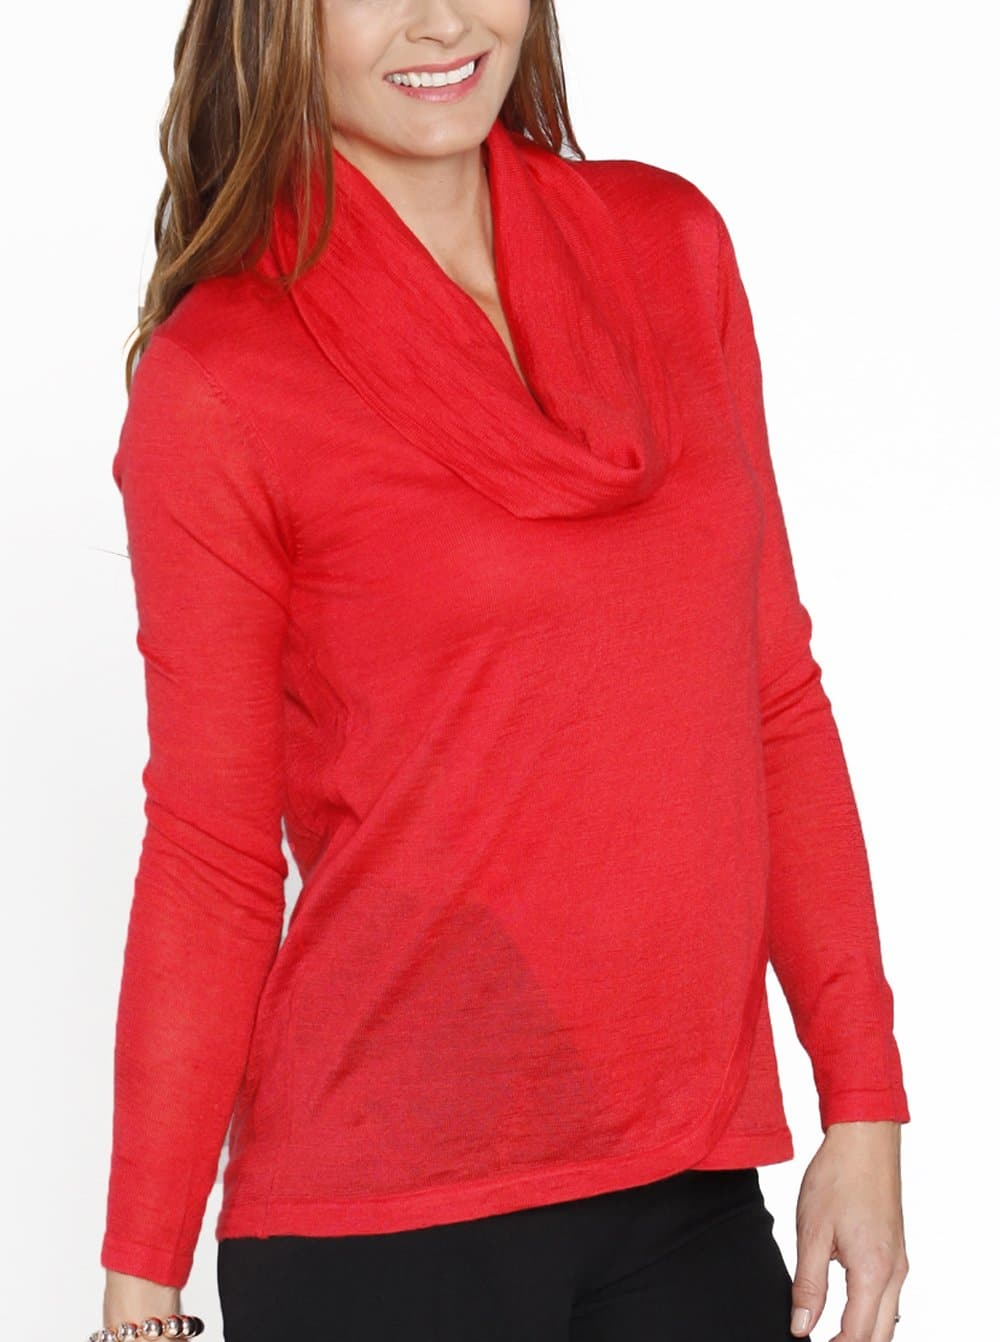 Nursing Petal Front Layered Knitted Top - Red Watermelon